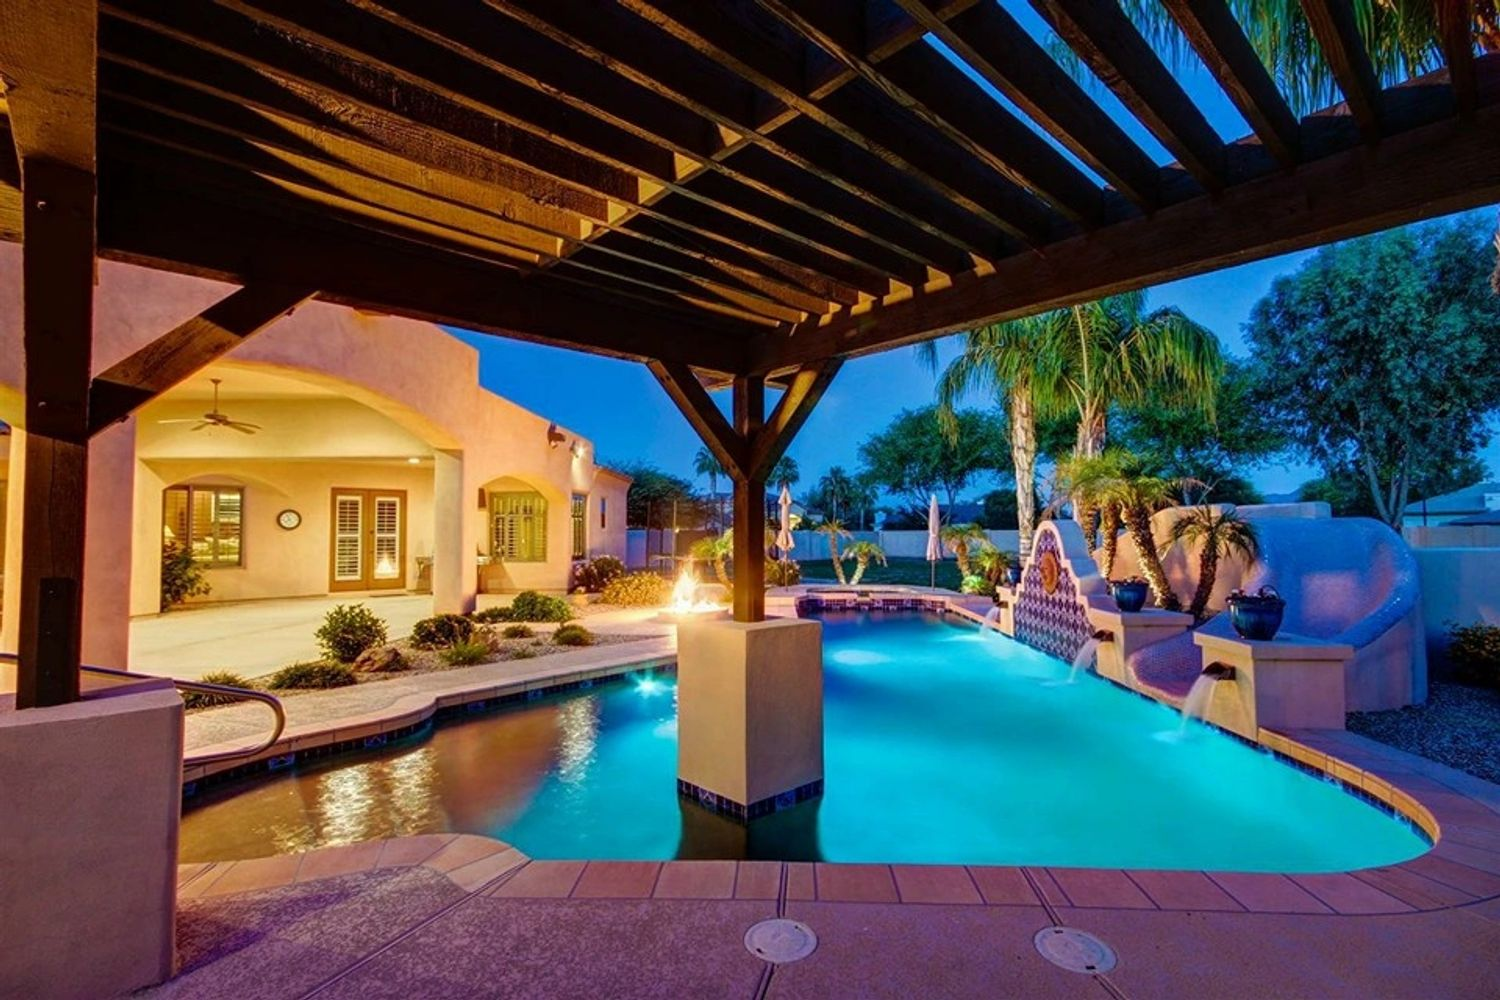 Gilbert, Chandler, and East Valley professional swimming pool repair, service, and maintenance